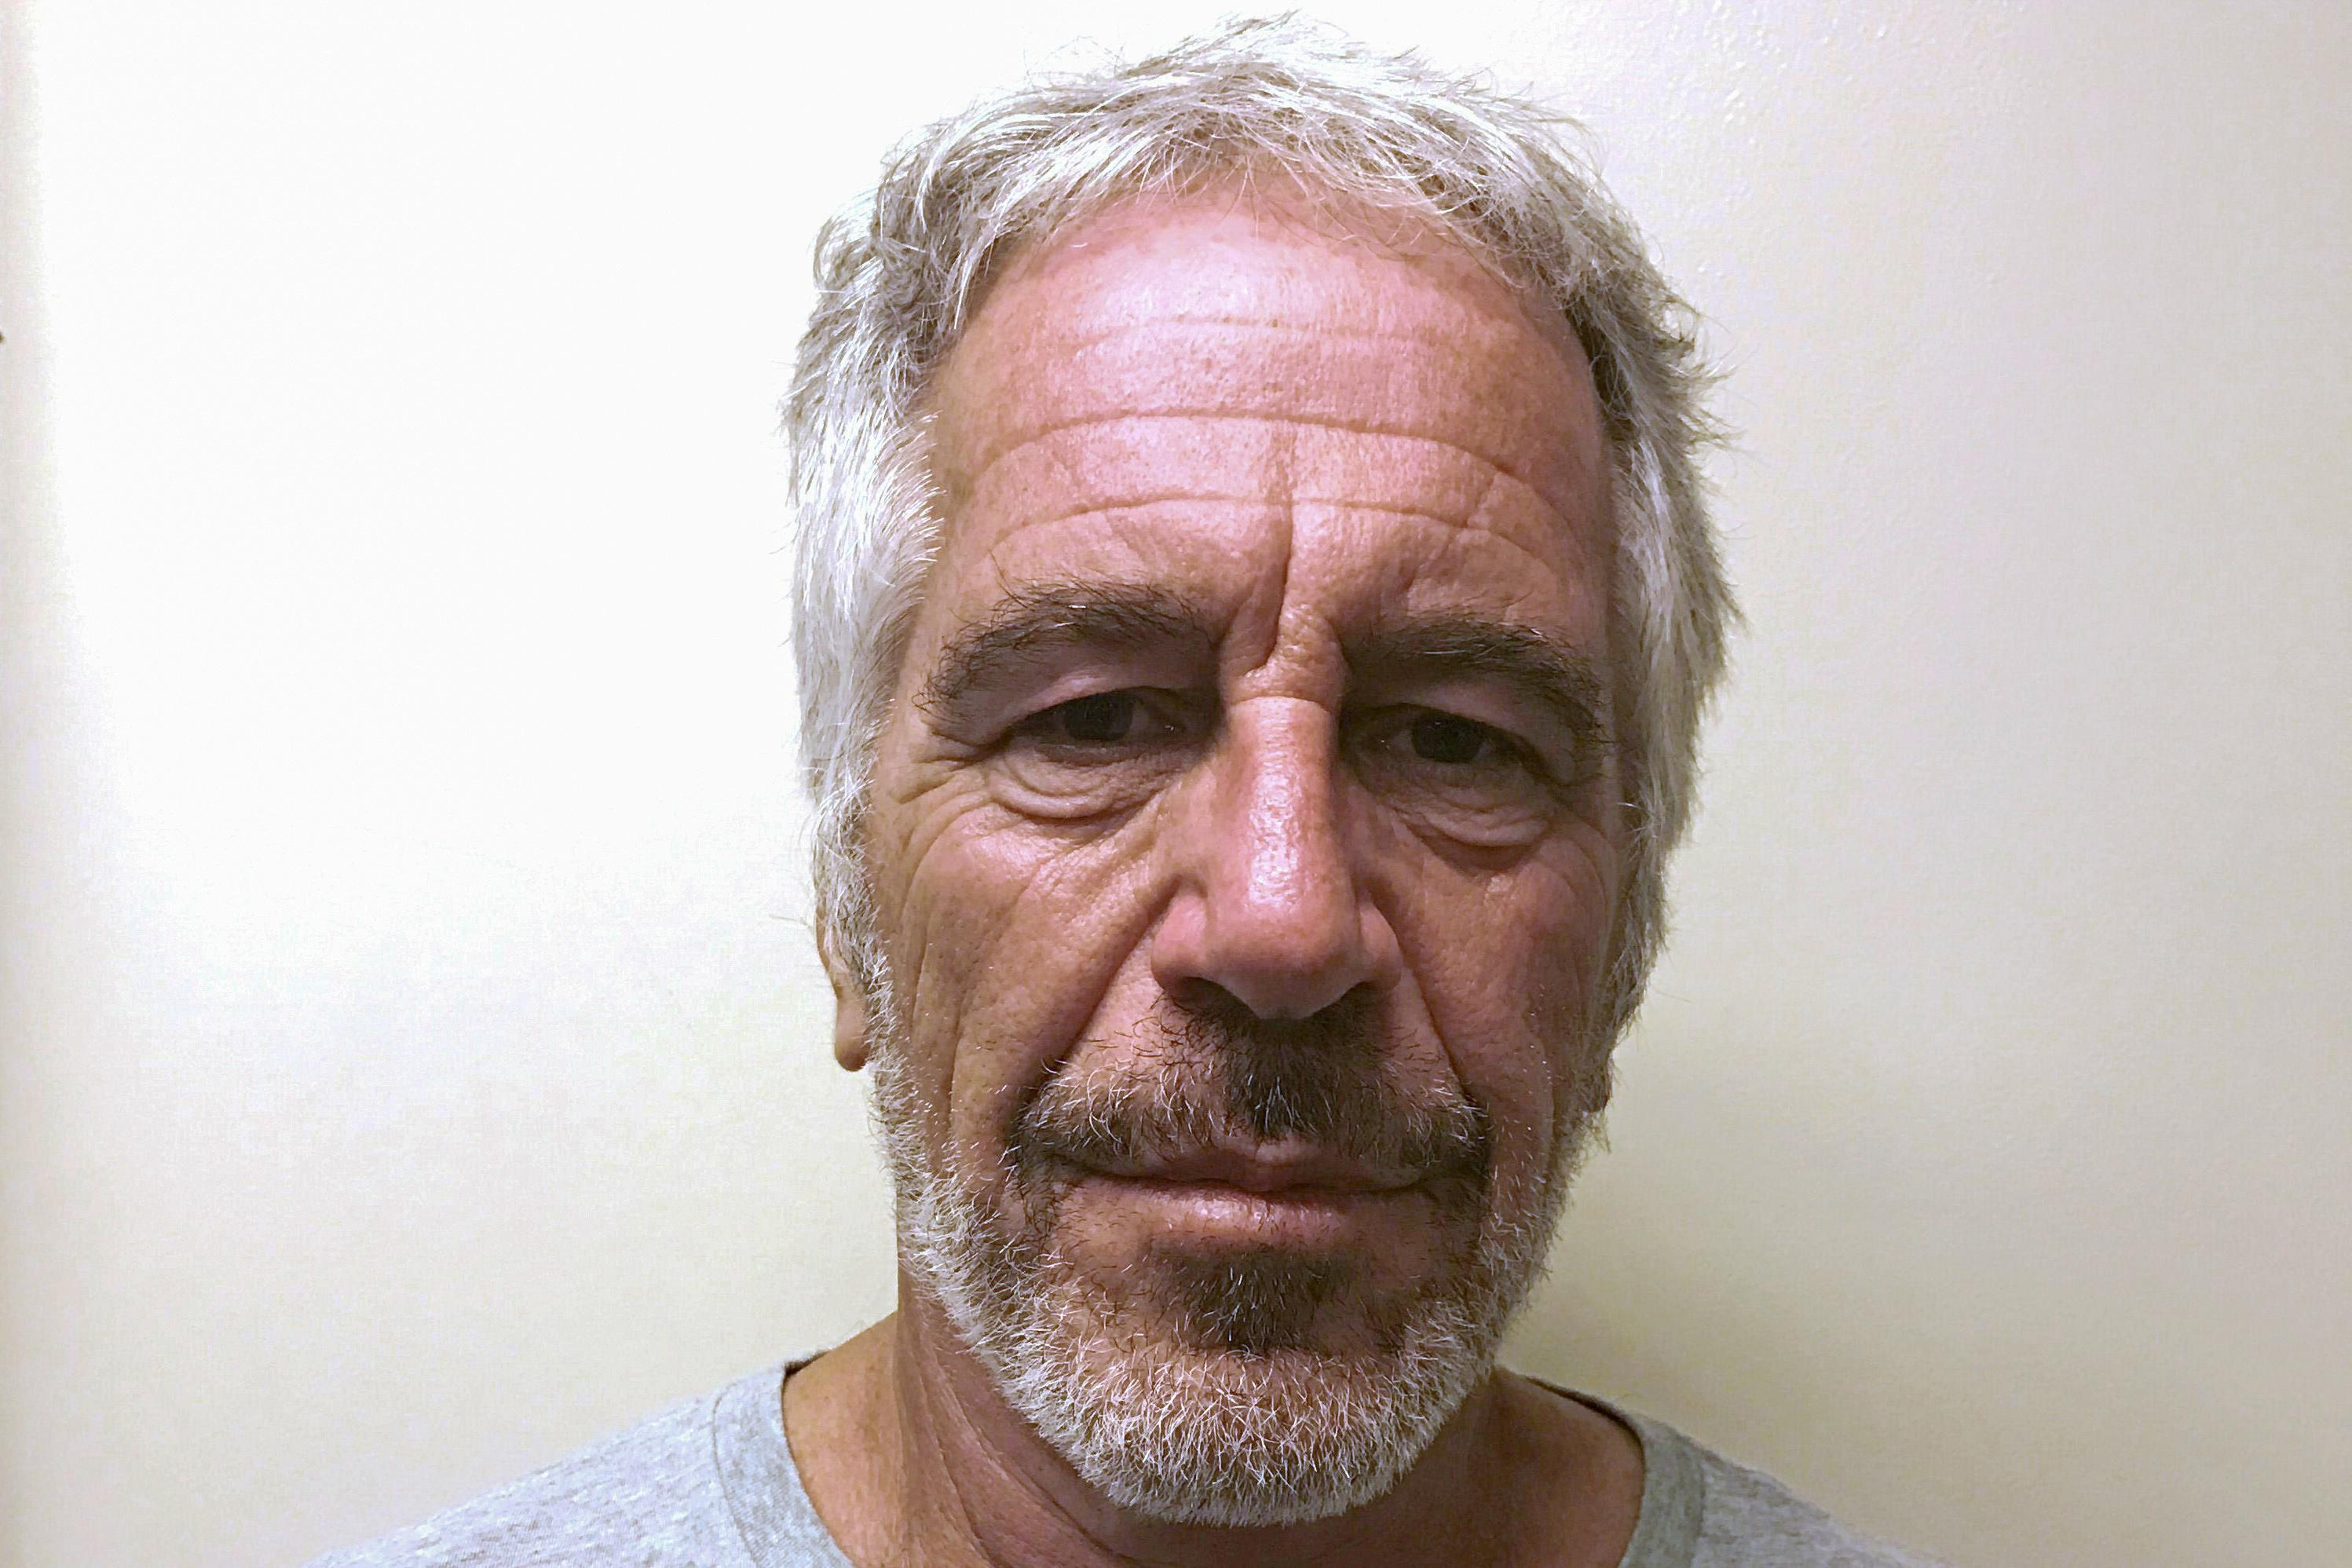 Jeffrey Epstein autopsy report shows broken neck: sources